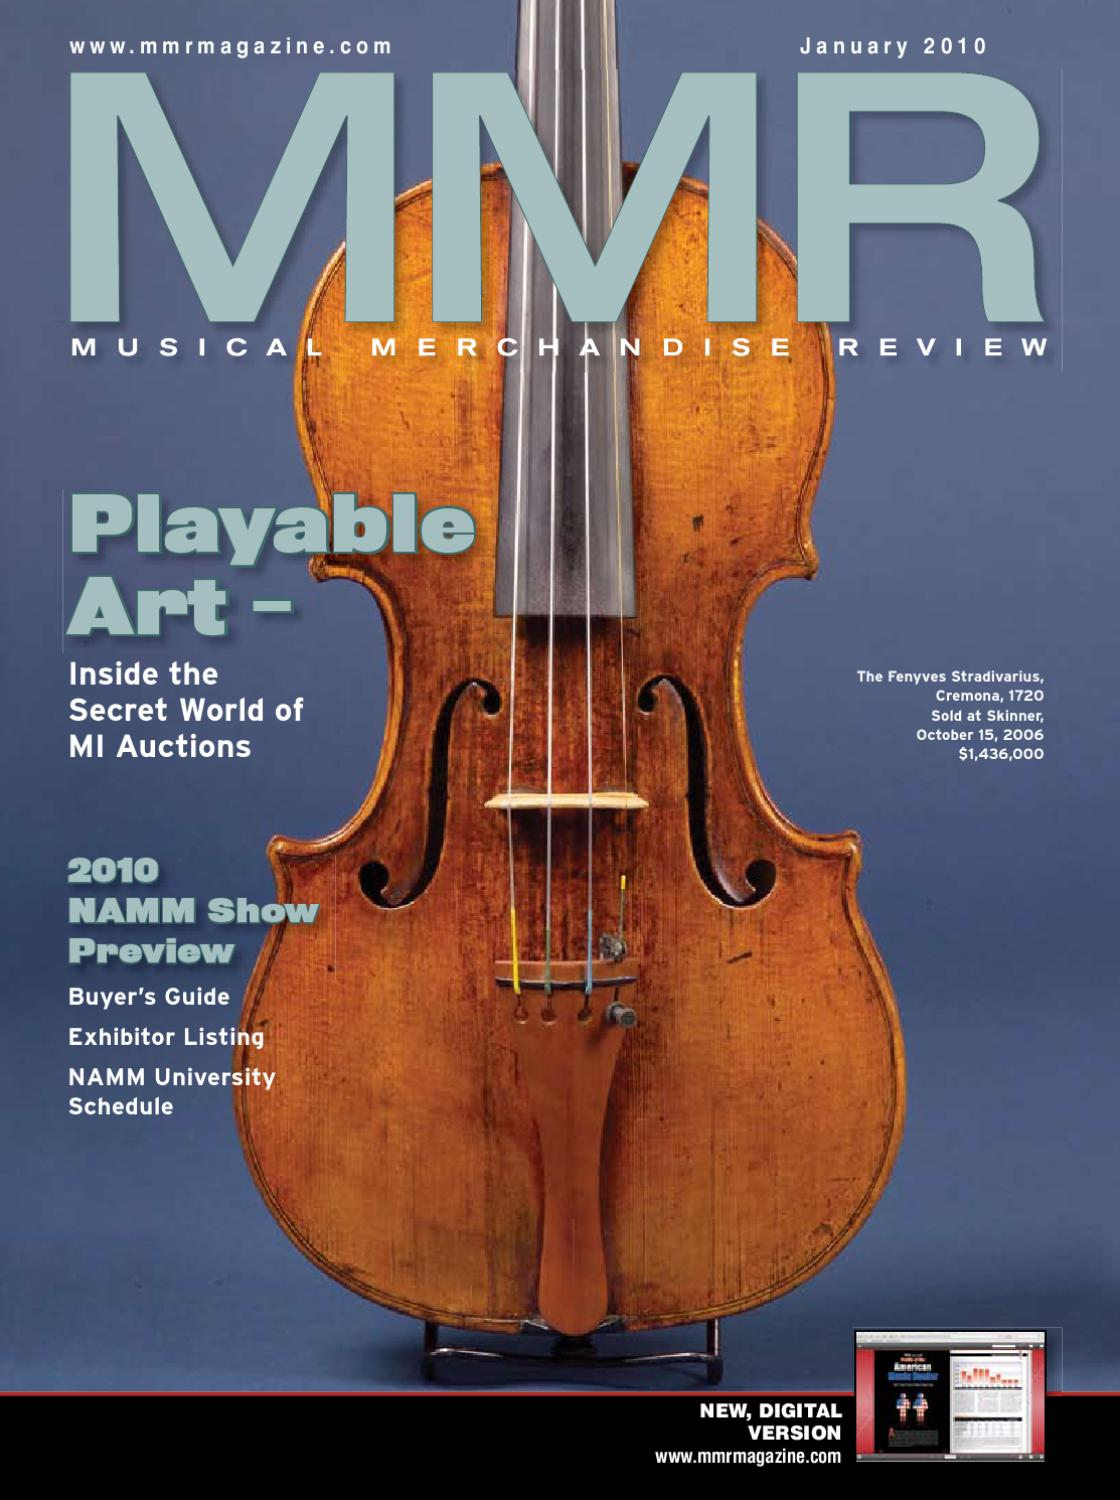 MMR January 40 ISSUU by MMR   Musical Merchandise Review   issuu